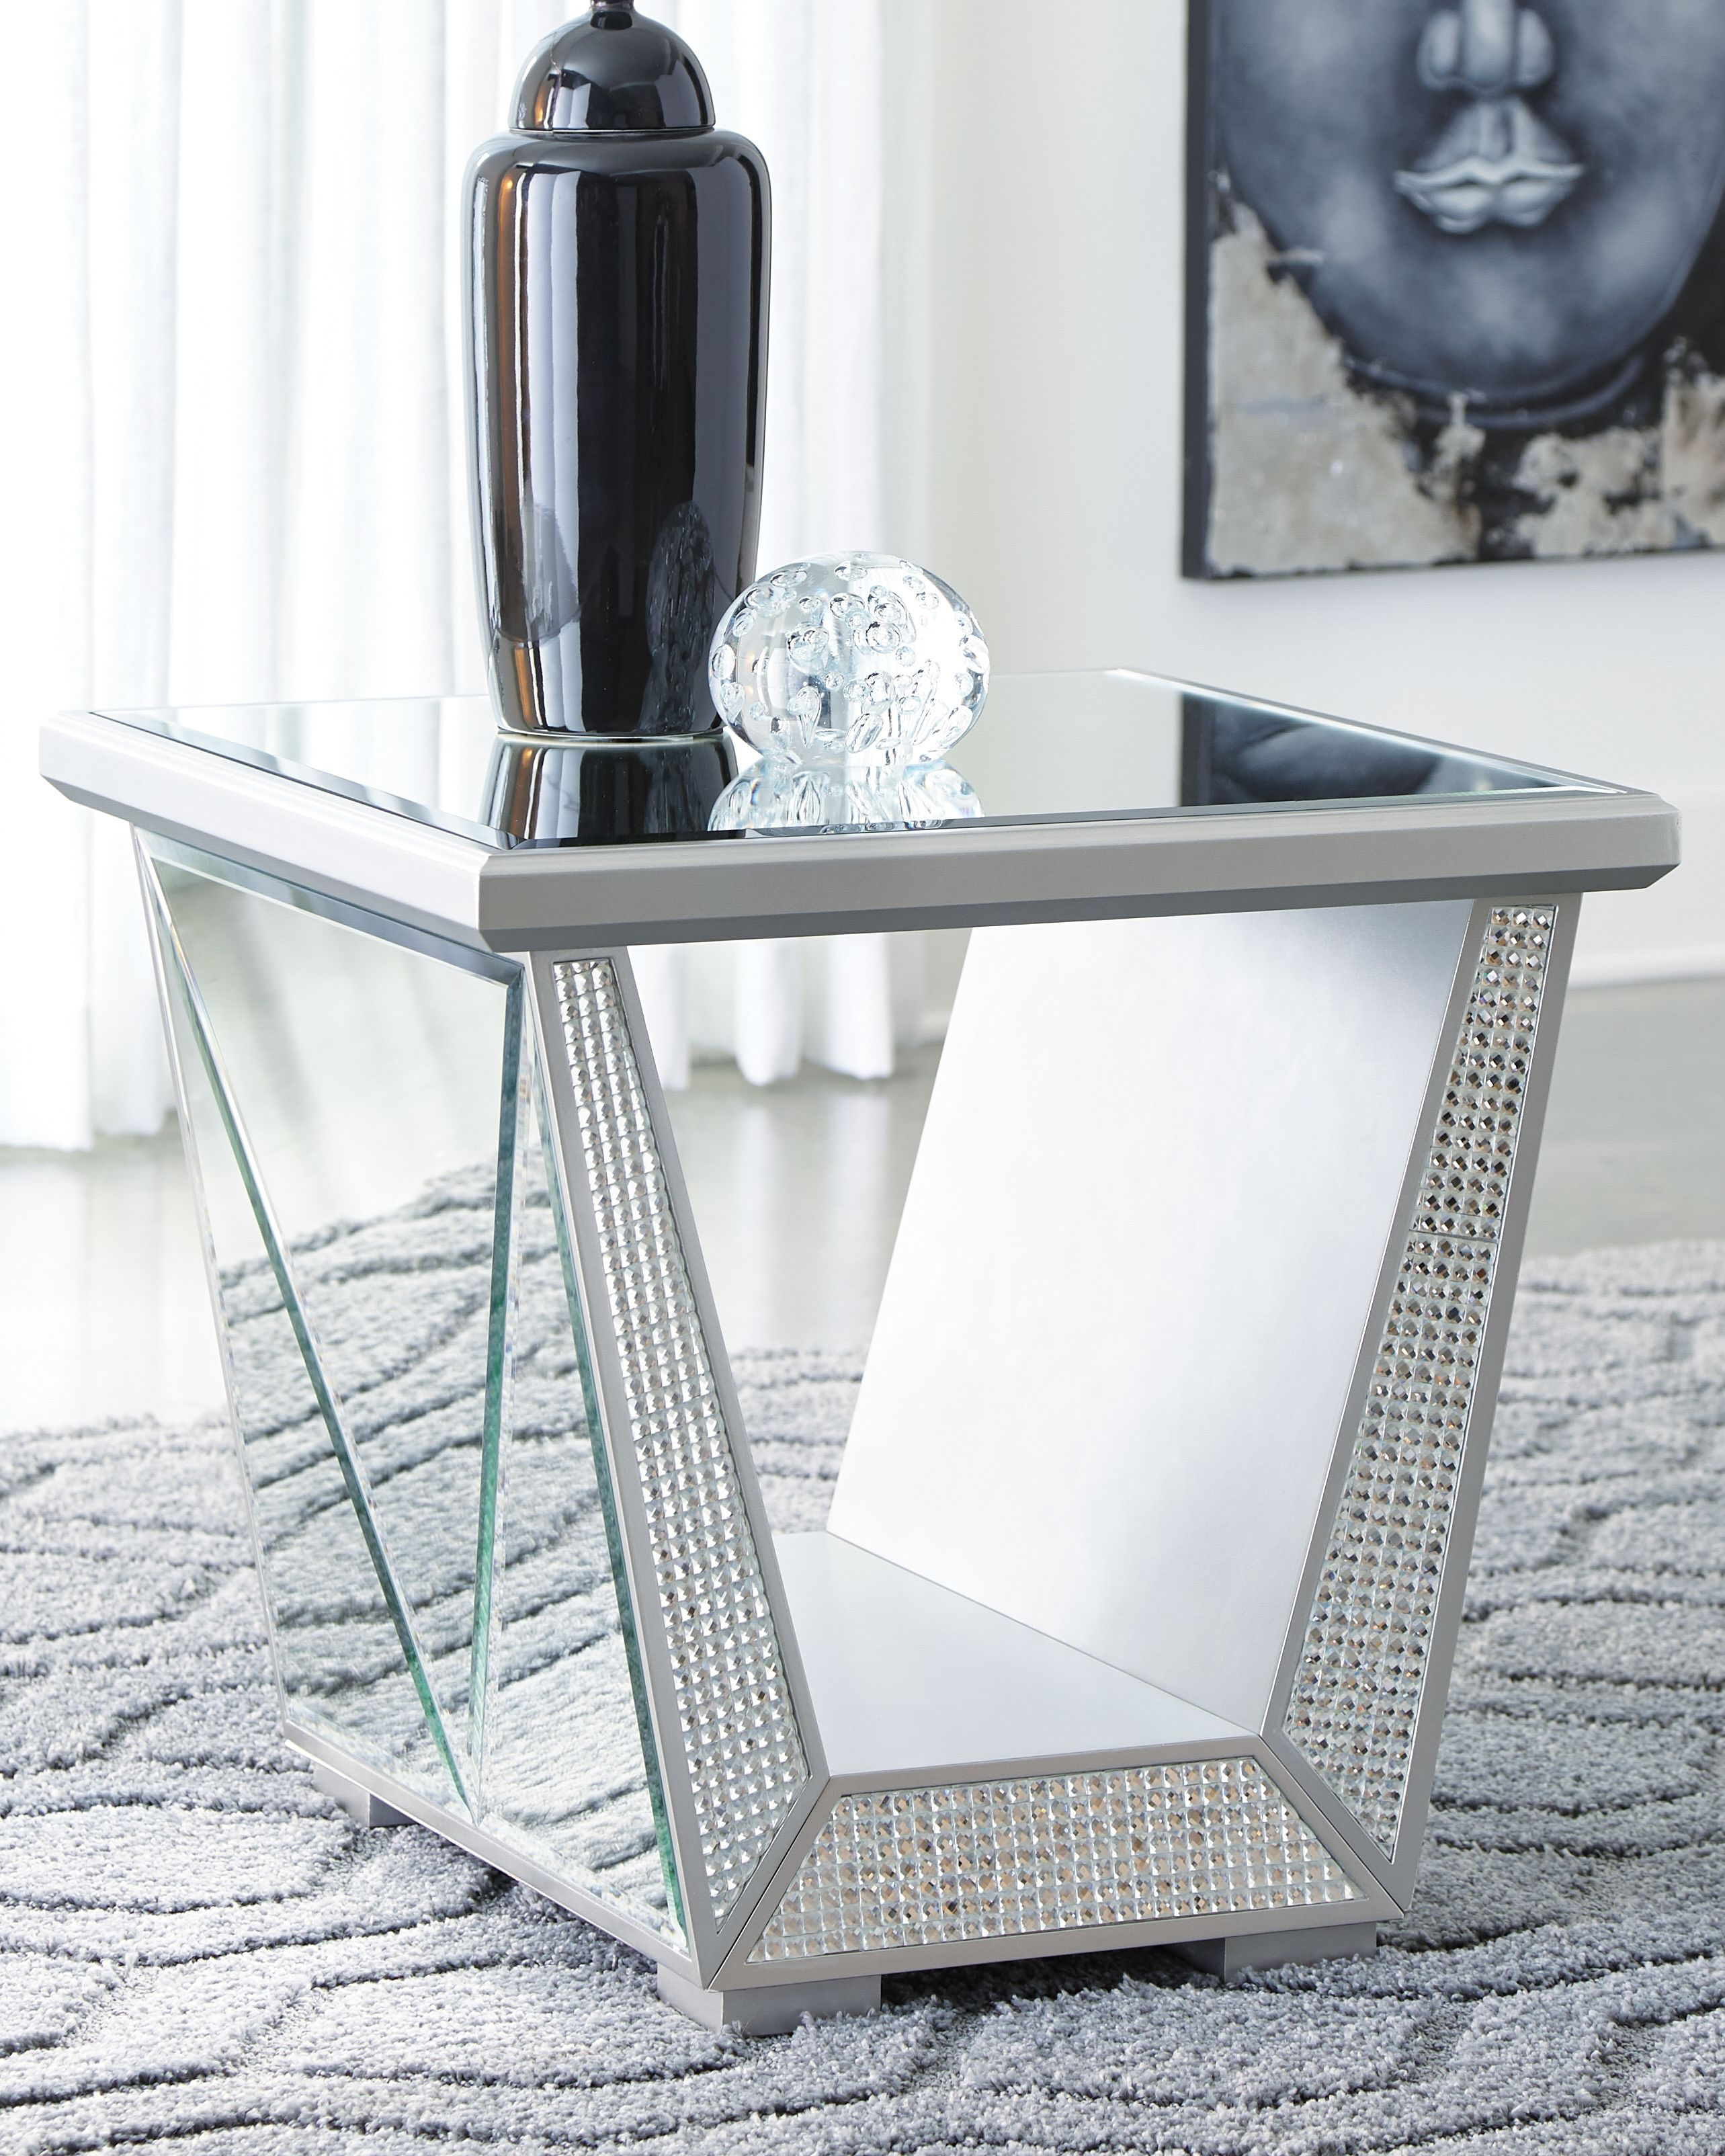 Fanmory End Table Ashley Furniture Homestore In 2021 End Tables Coffee Table End Table Set Mirrored Coffee Tables [ 3208 x 2567 Pixel ]